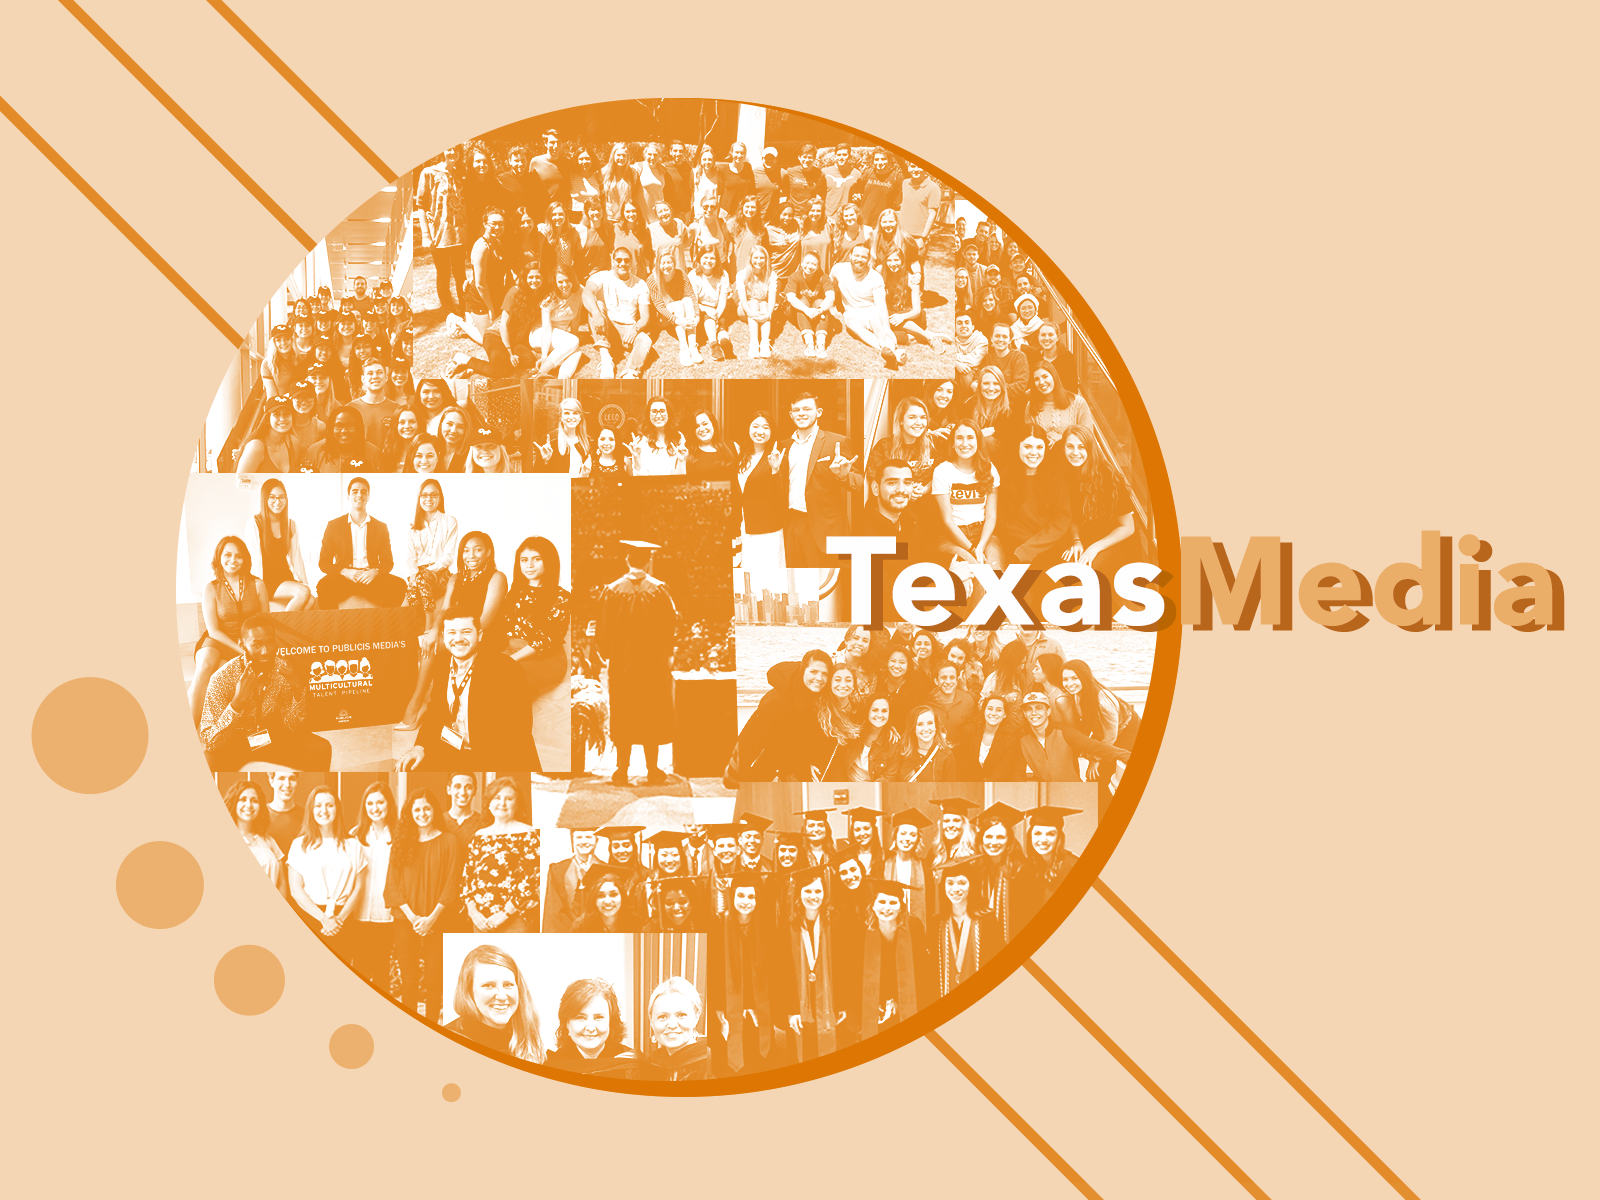 Texas Media Turns 20